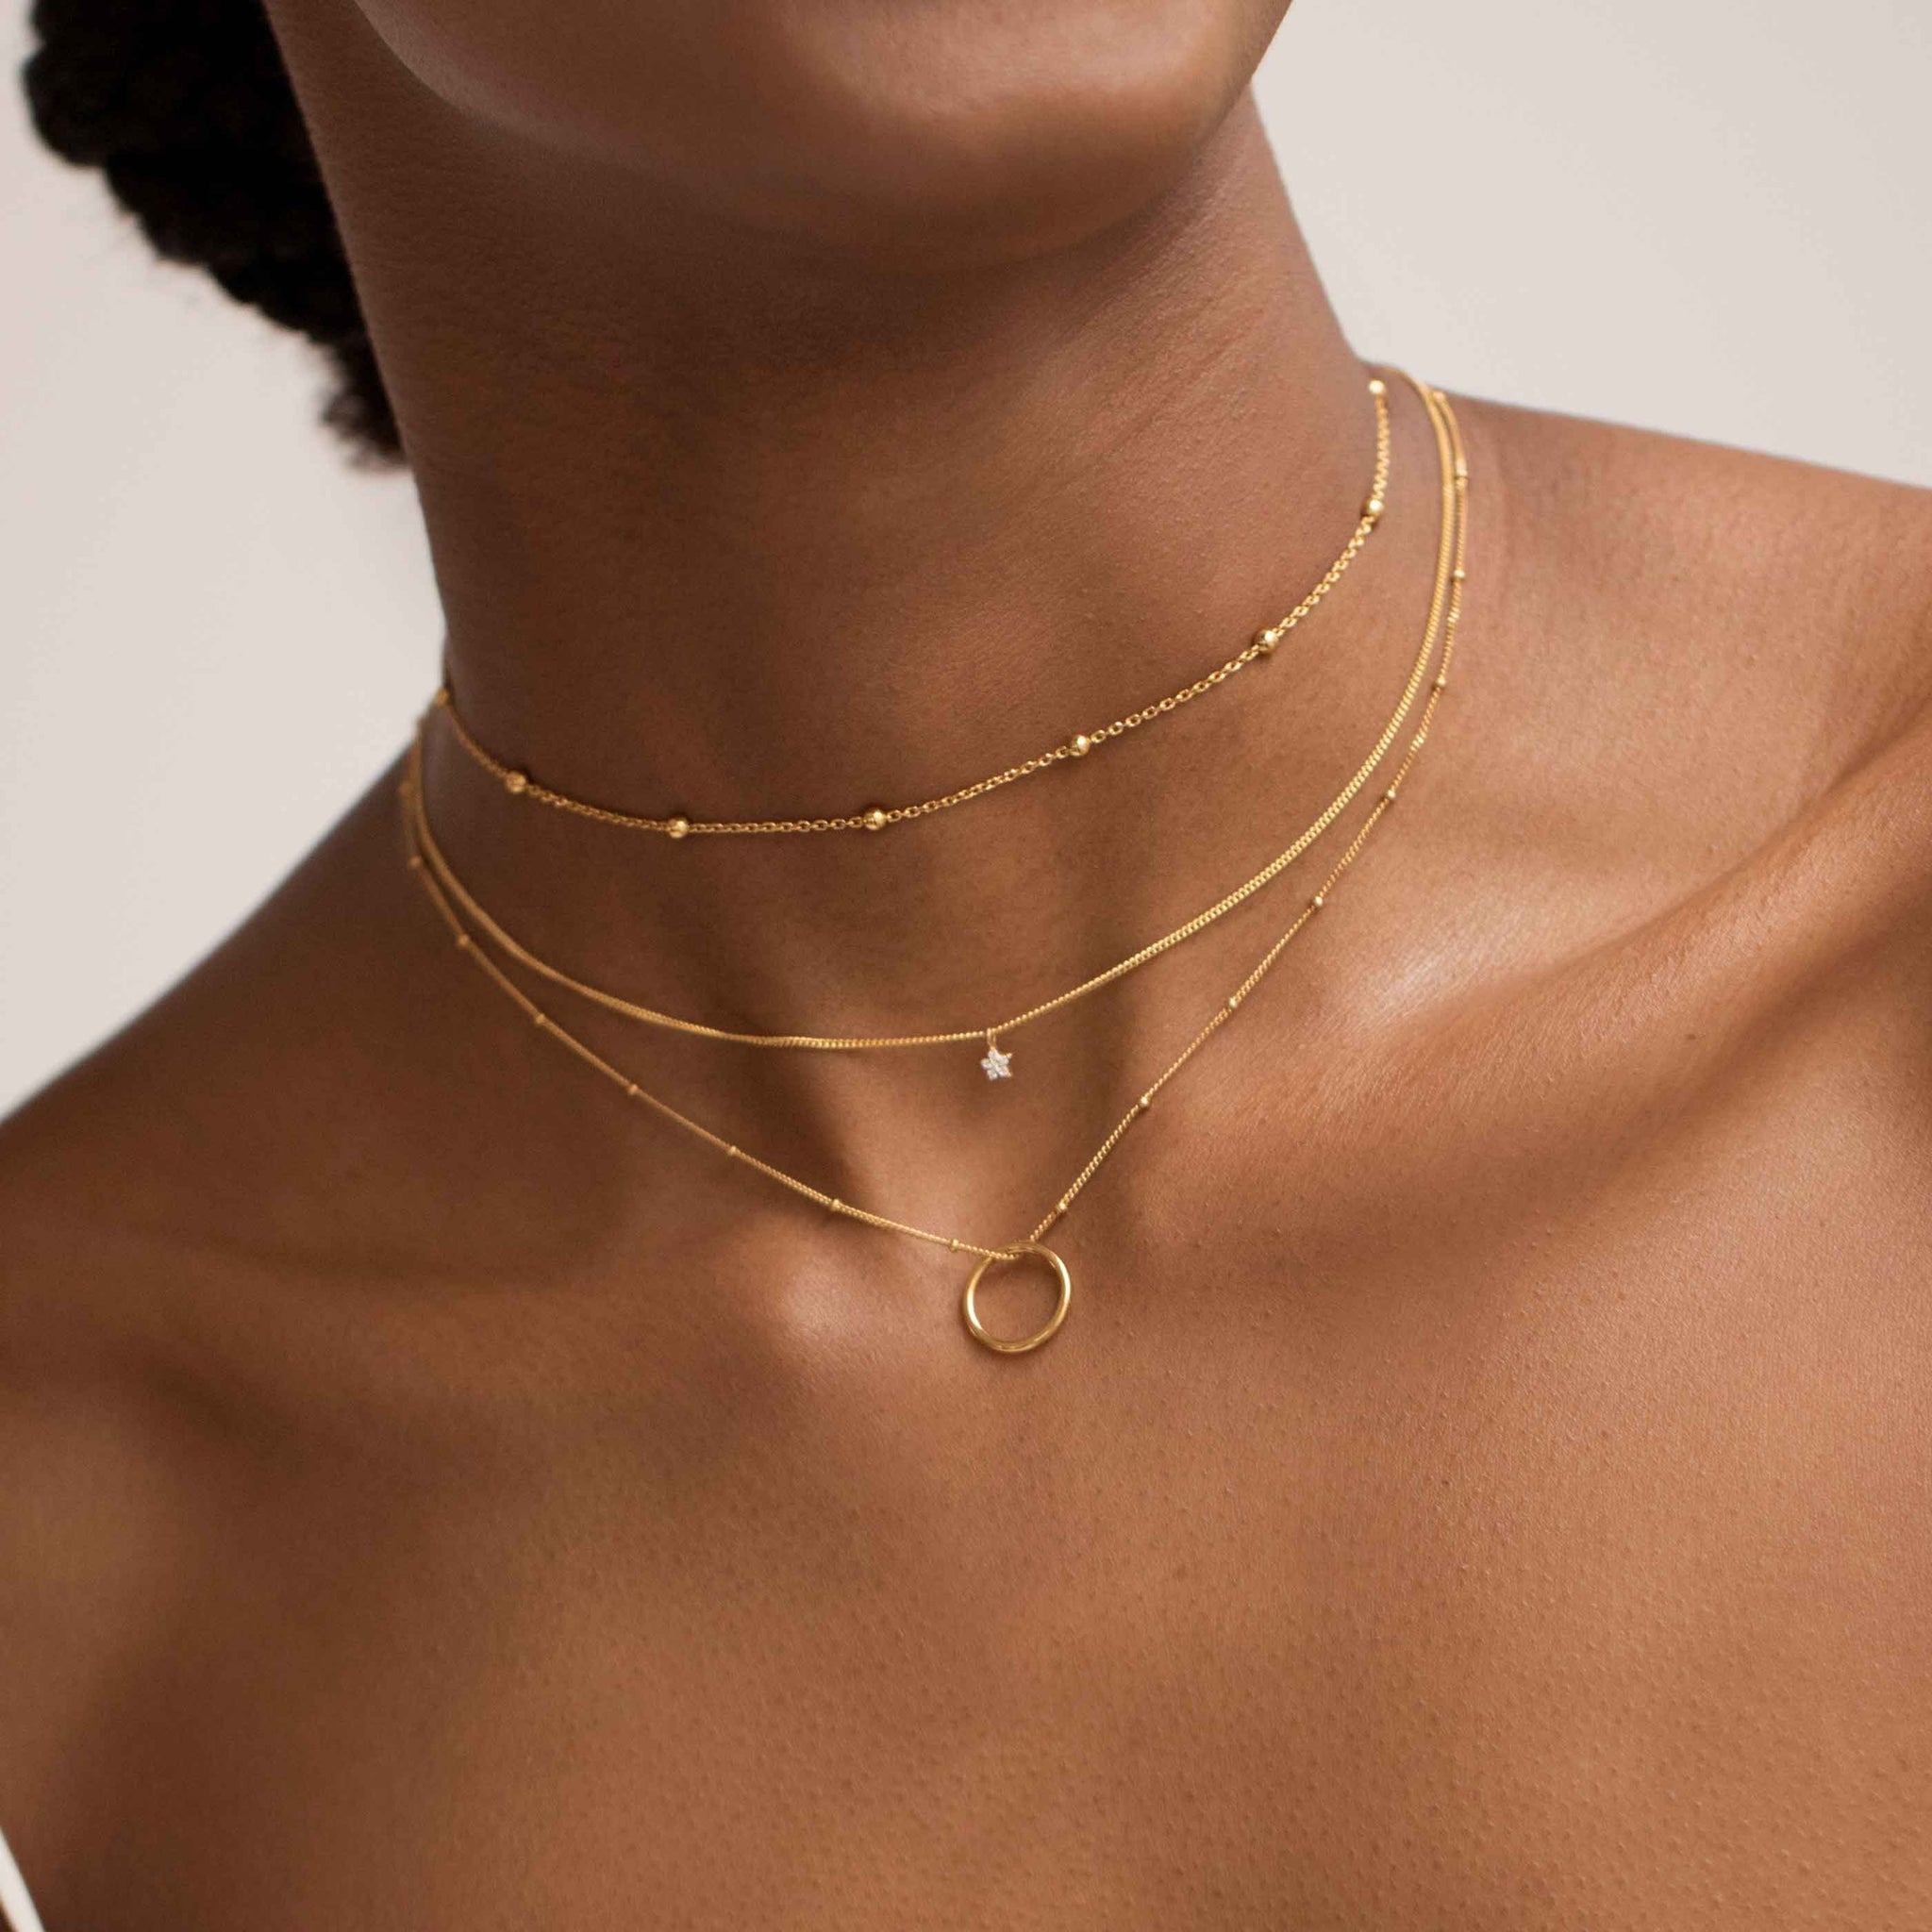 Basic Large Beaded Choker in Gold worn with pendant necklaces